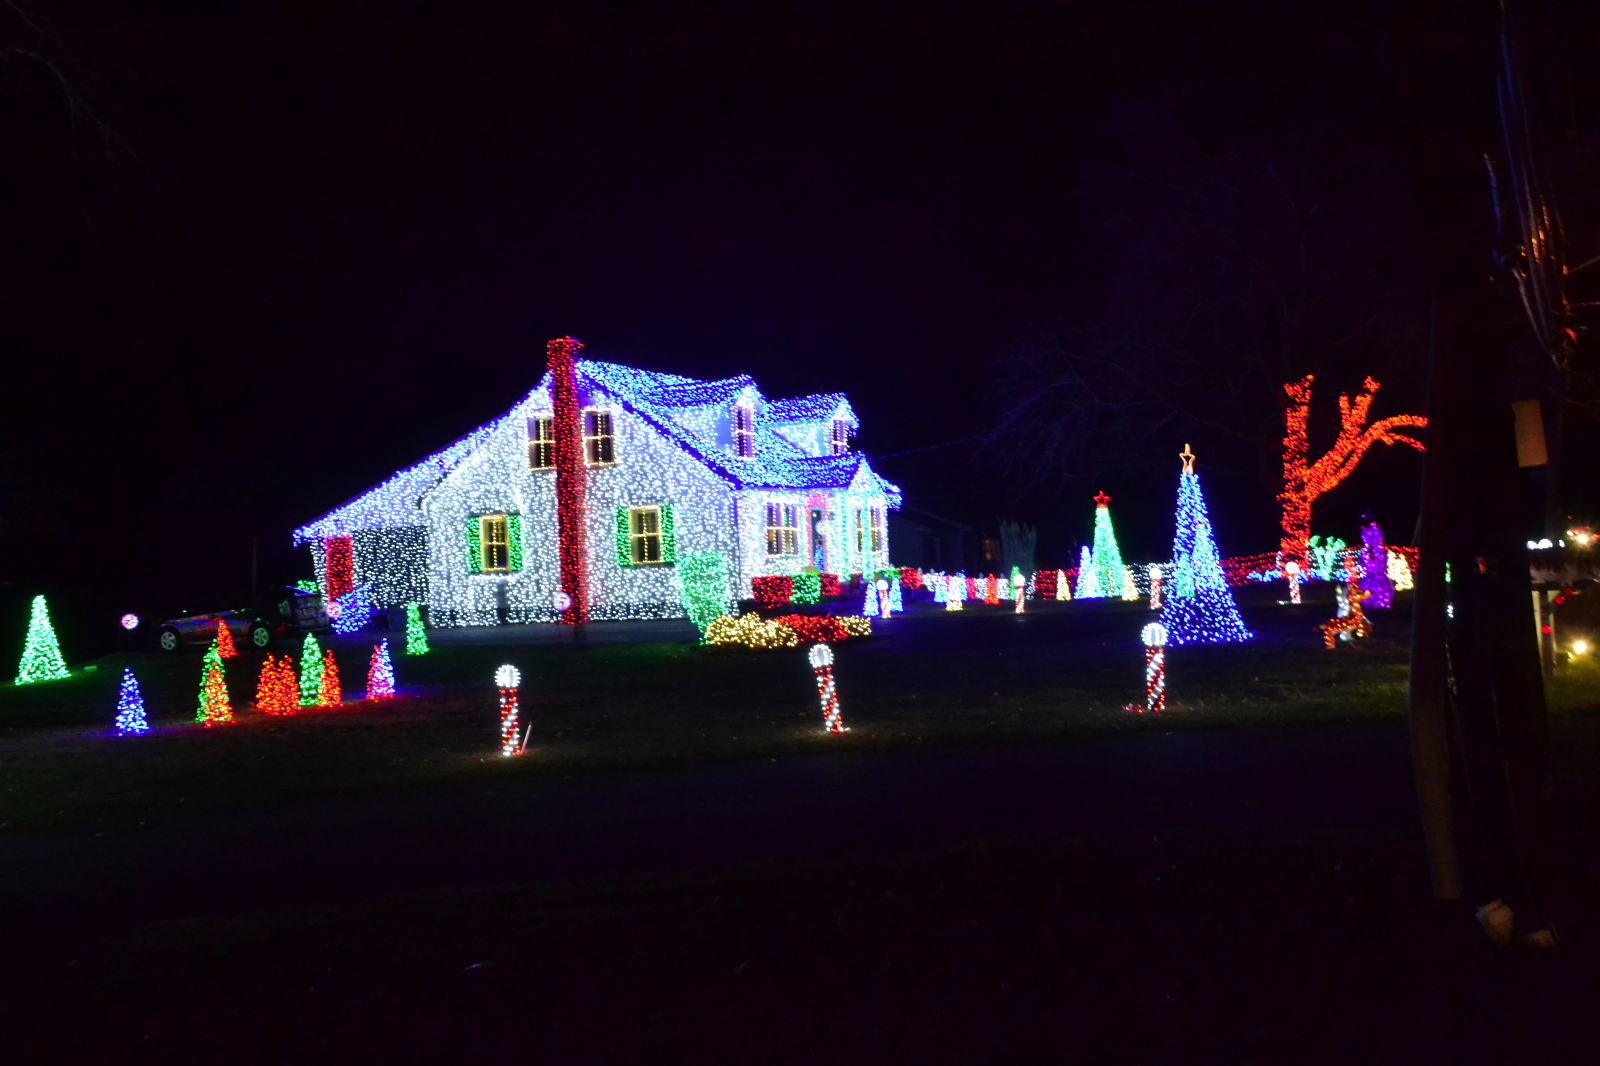 roxanne ardary of long foster real estate opens 2017 marltons best christmas lights contest - Best Christmas Lights To Buy